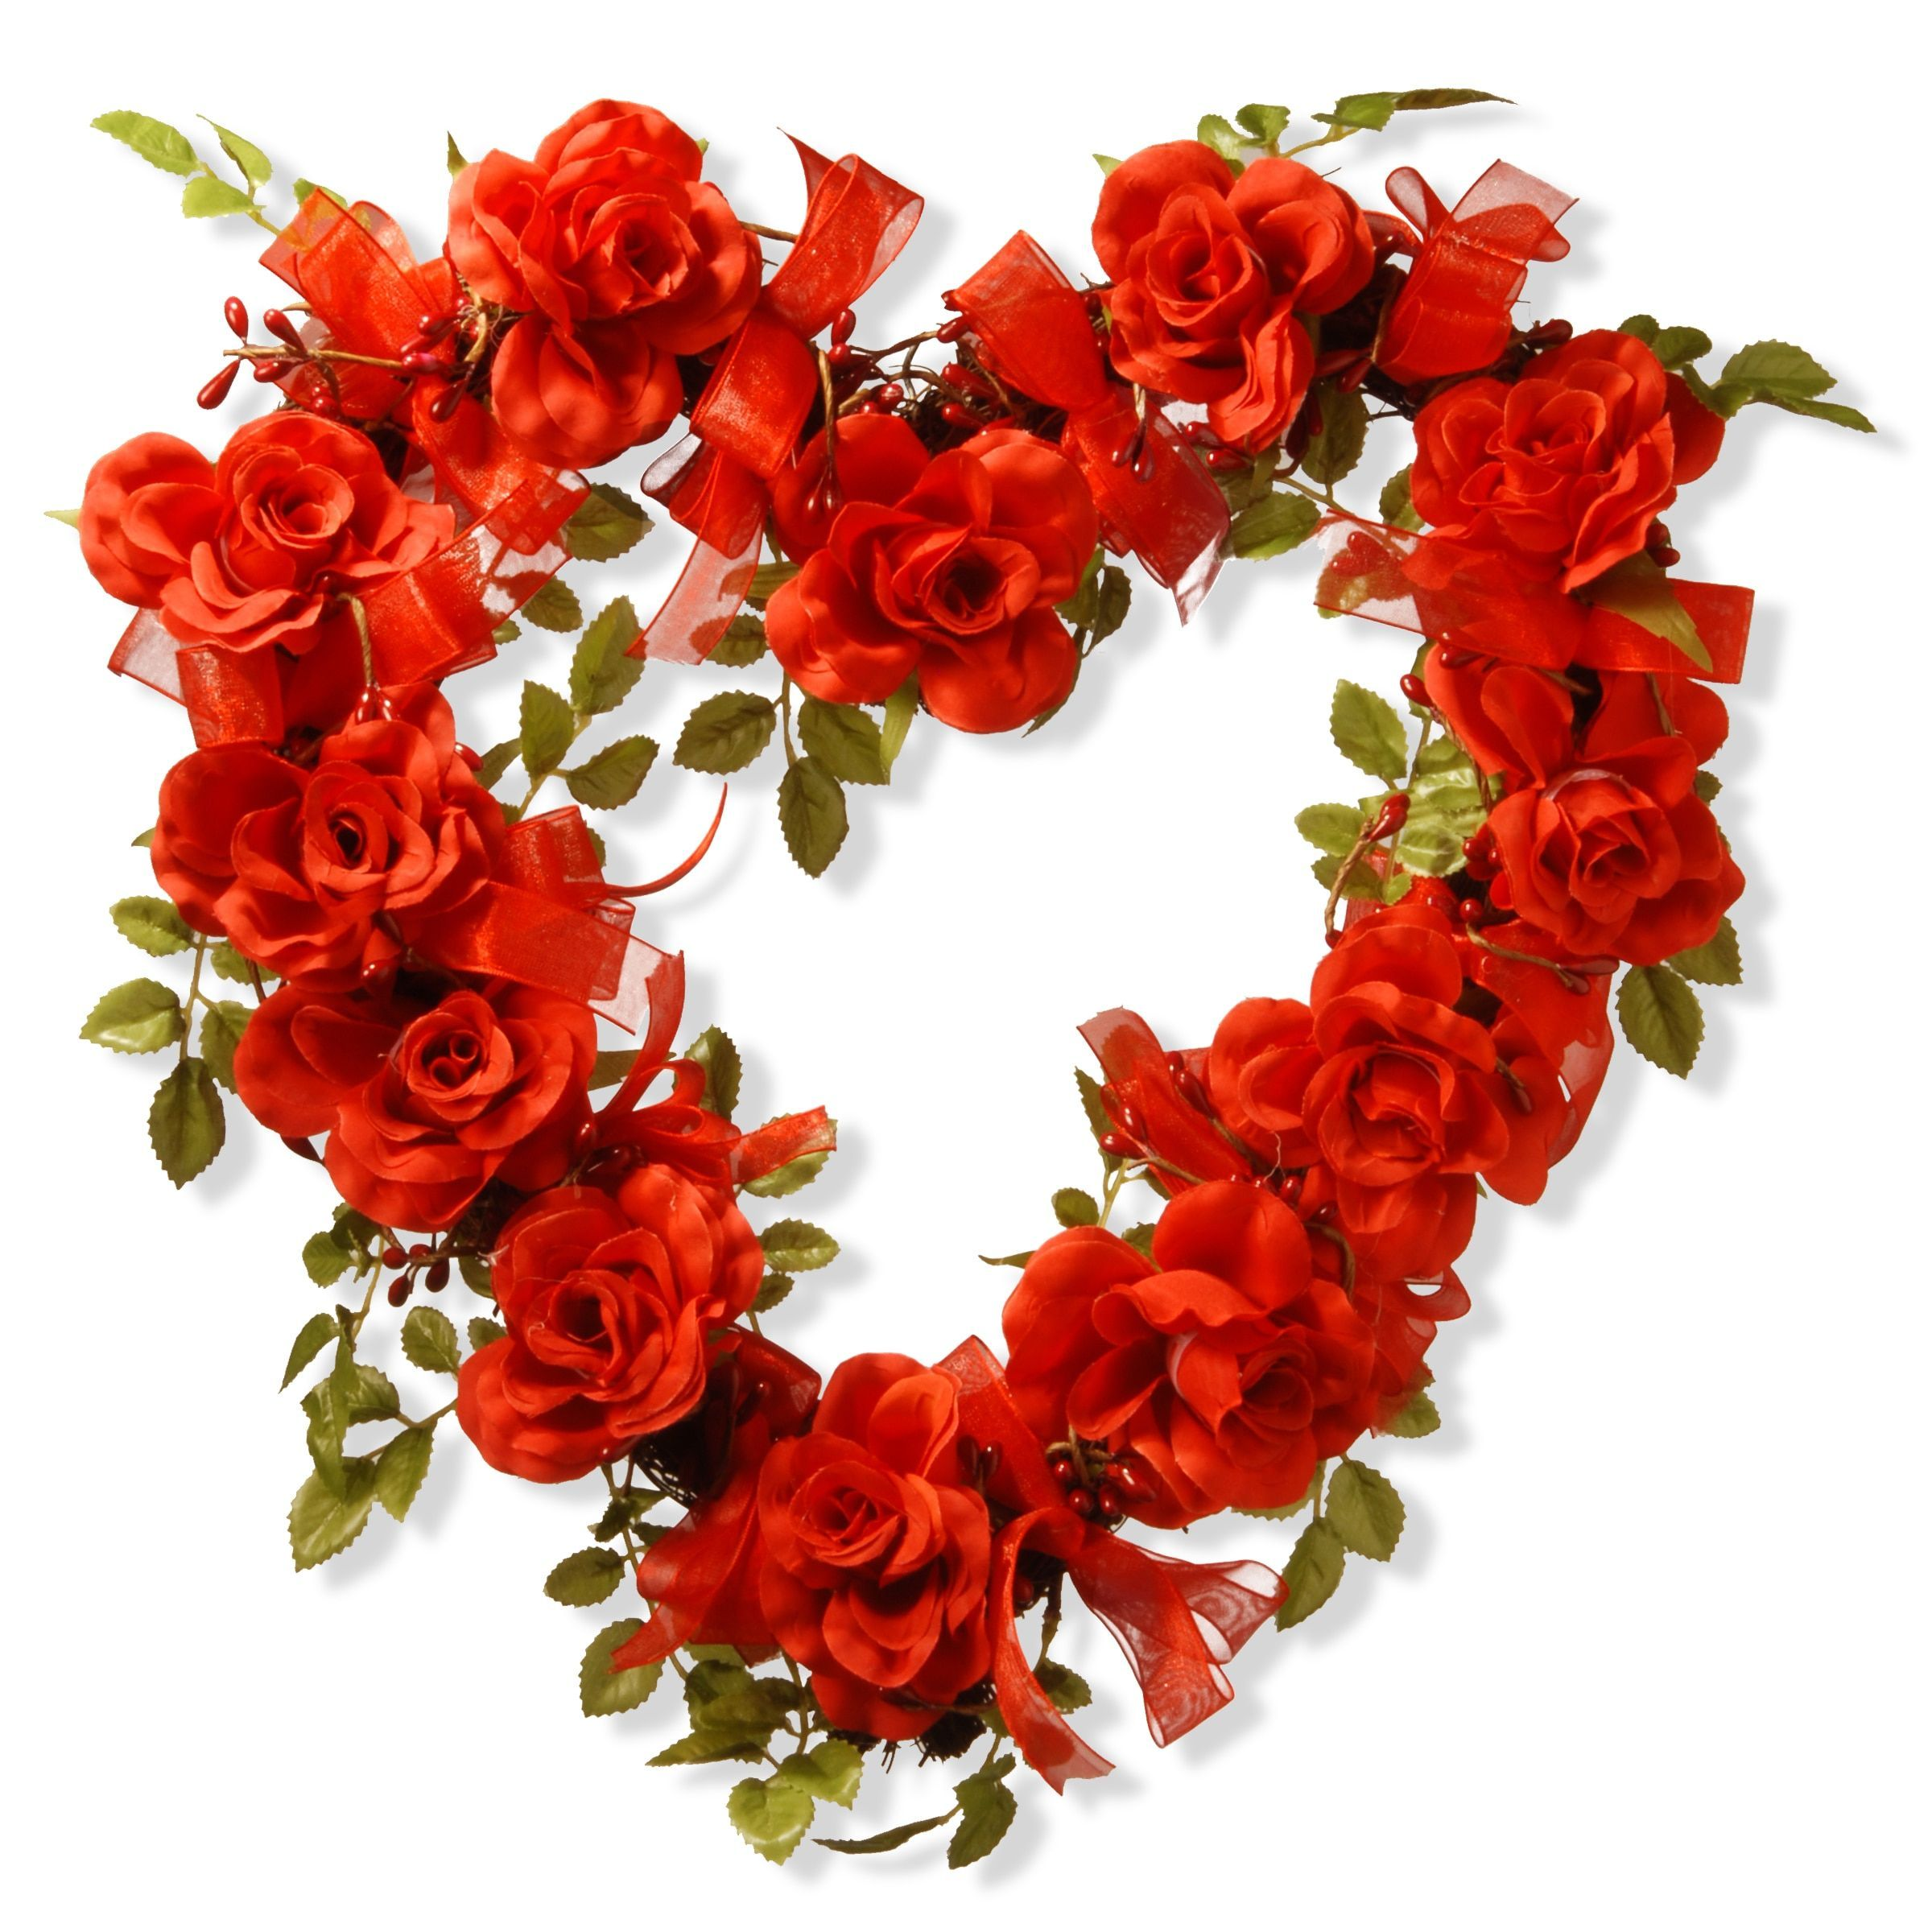 Overstock Com Online Shopping Bedding Furniture Electronics Jewelry Clothing More Heart Decorations Valentine Day Wreaths Rose Decor